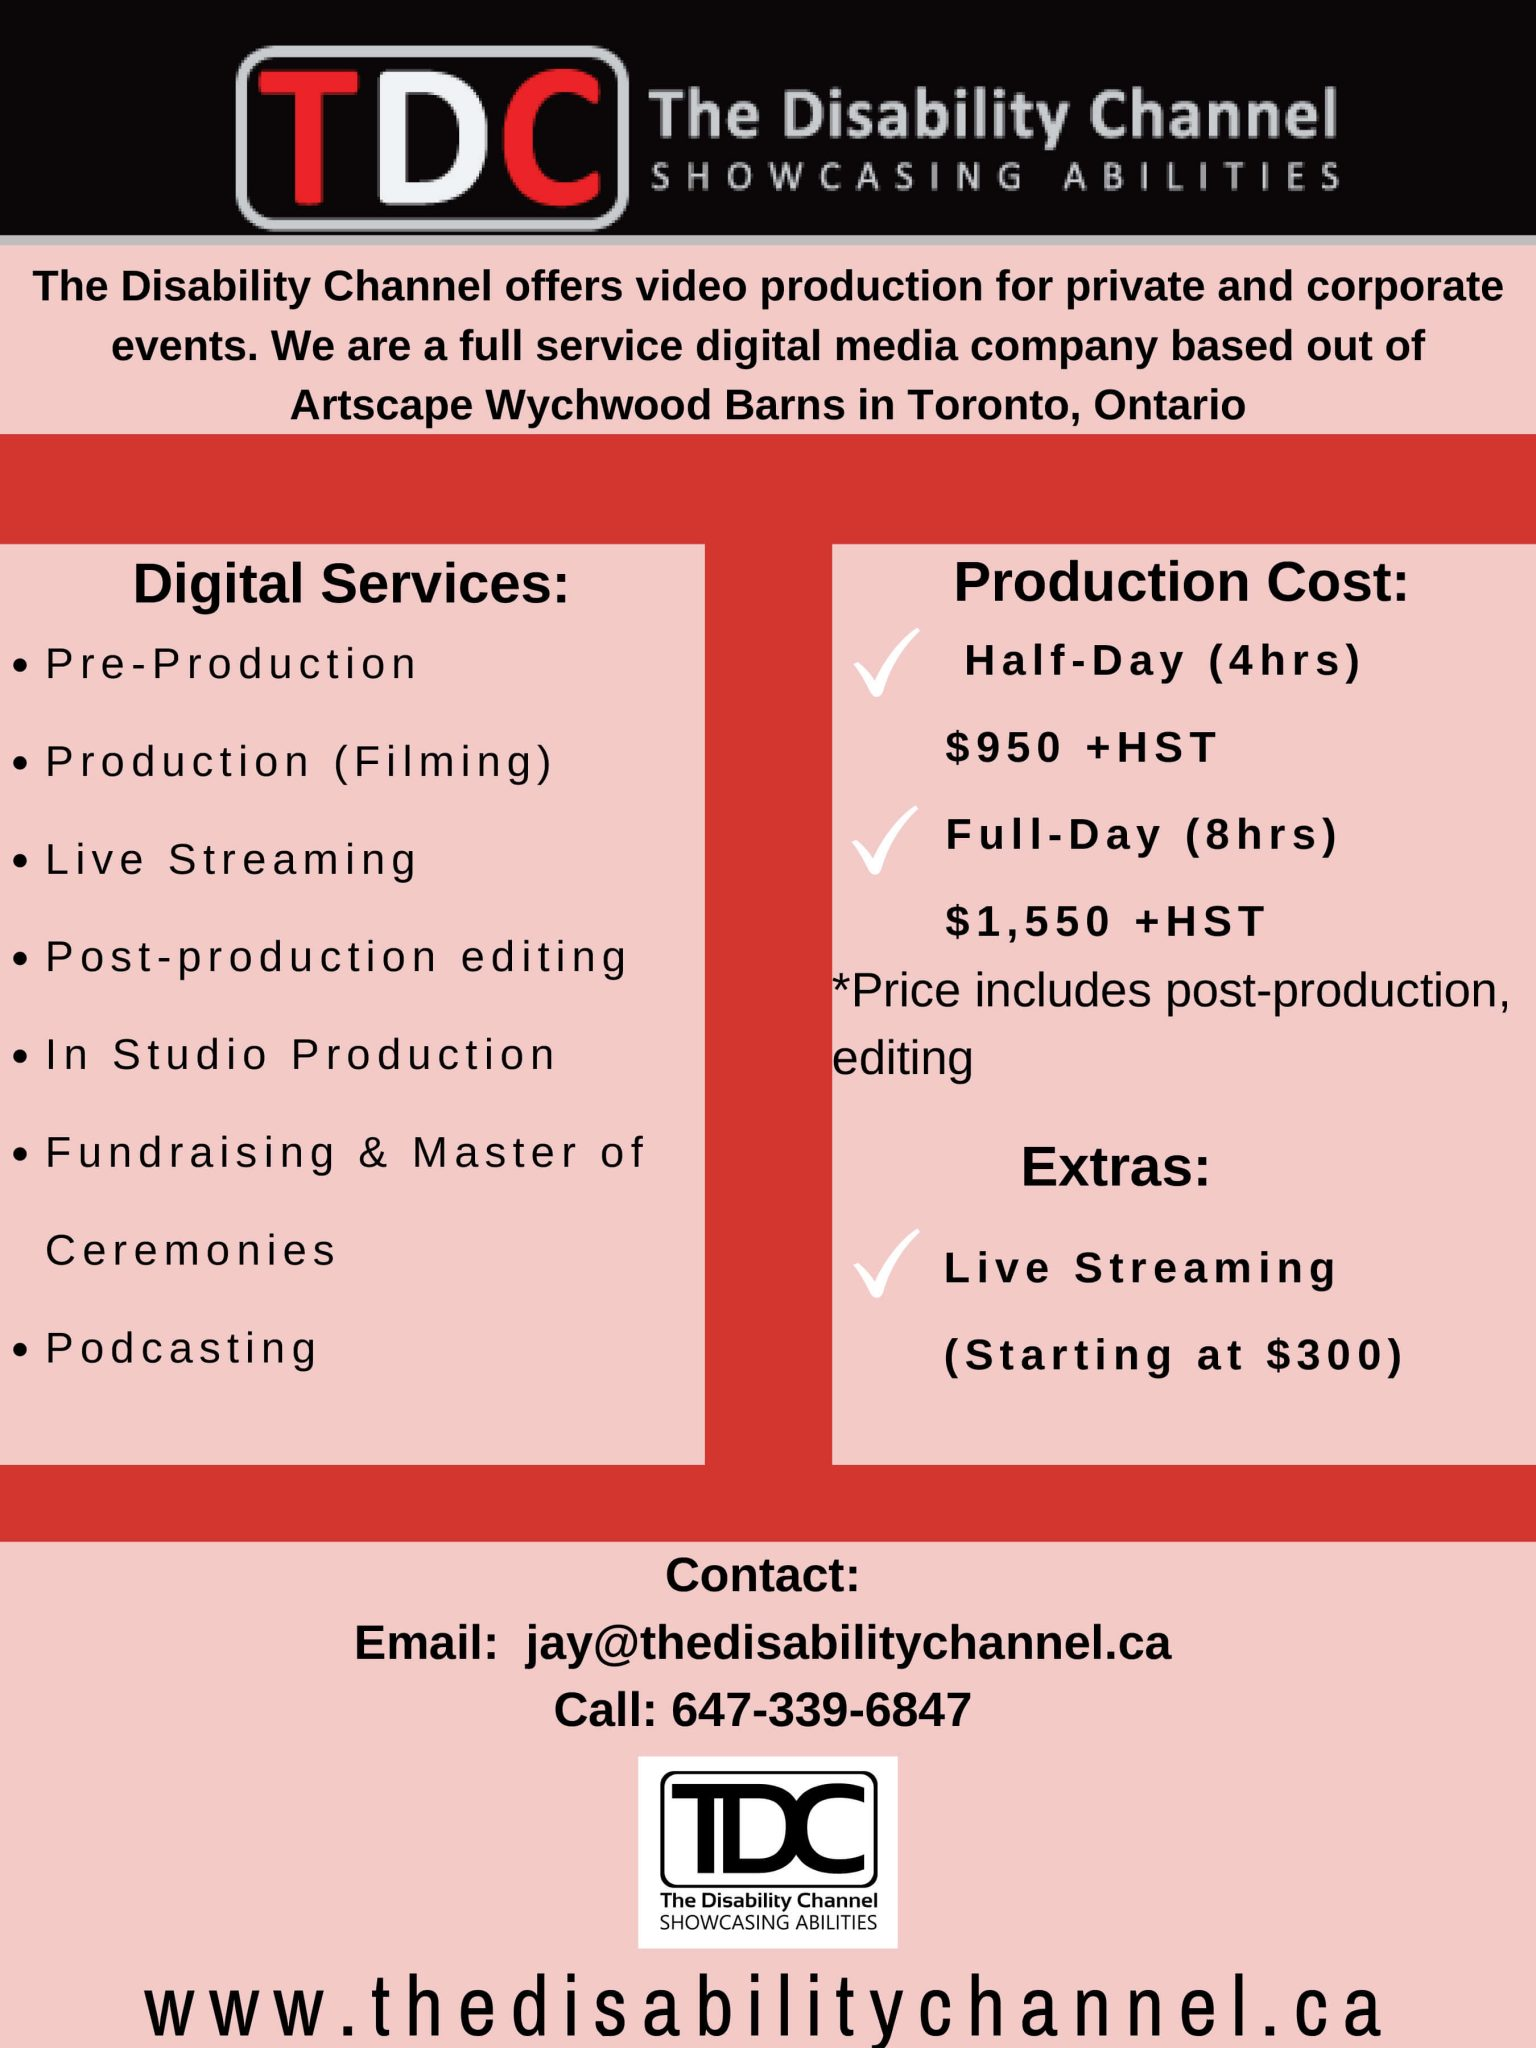 TDC Digital Services